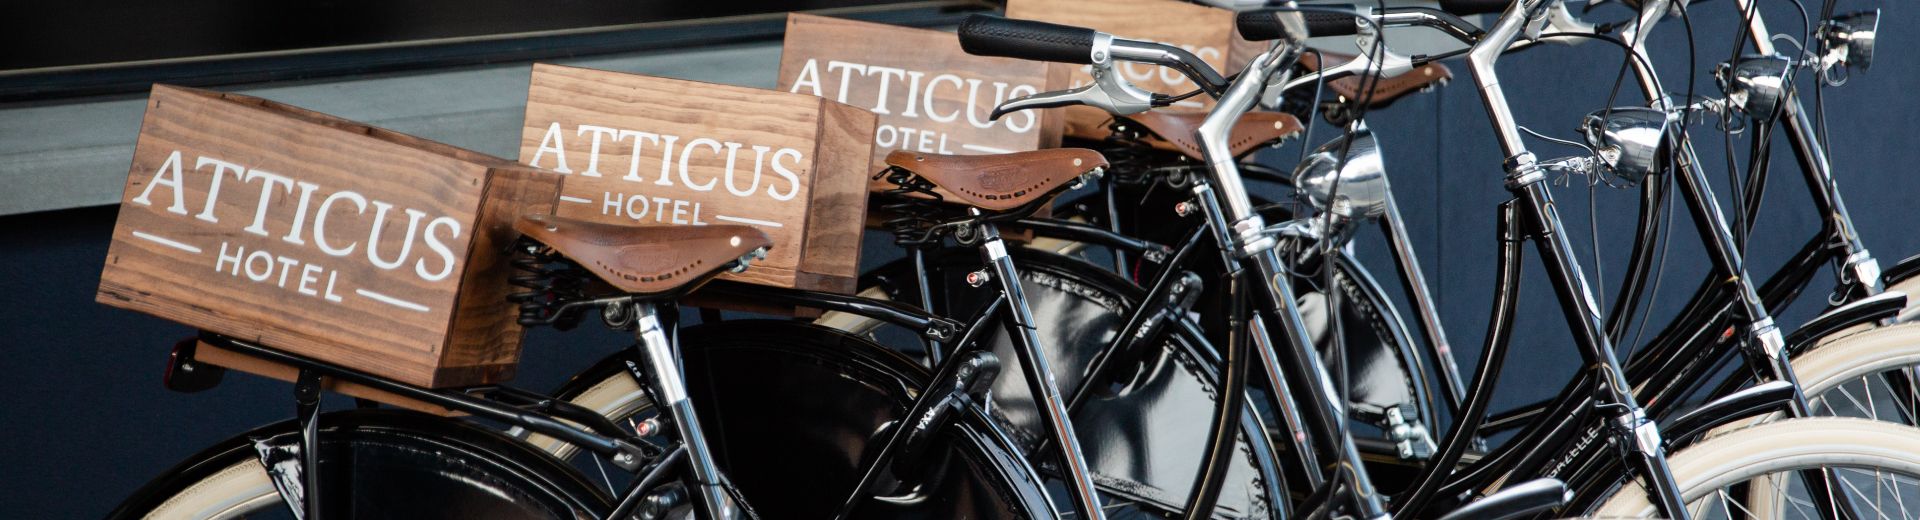 Stay at the Atticus Hotel in McMinnville, Oregon